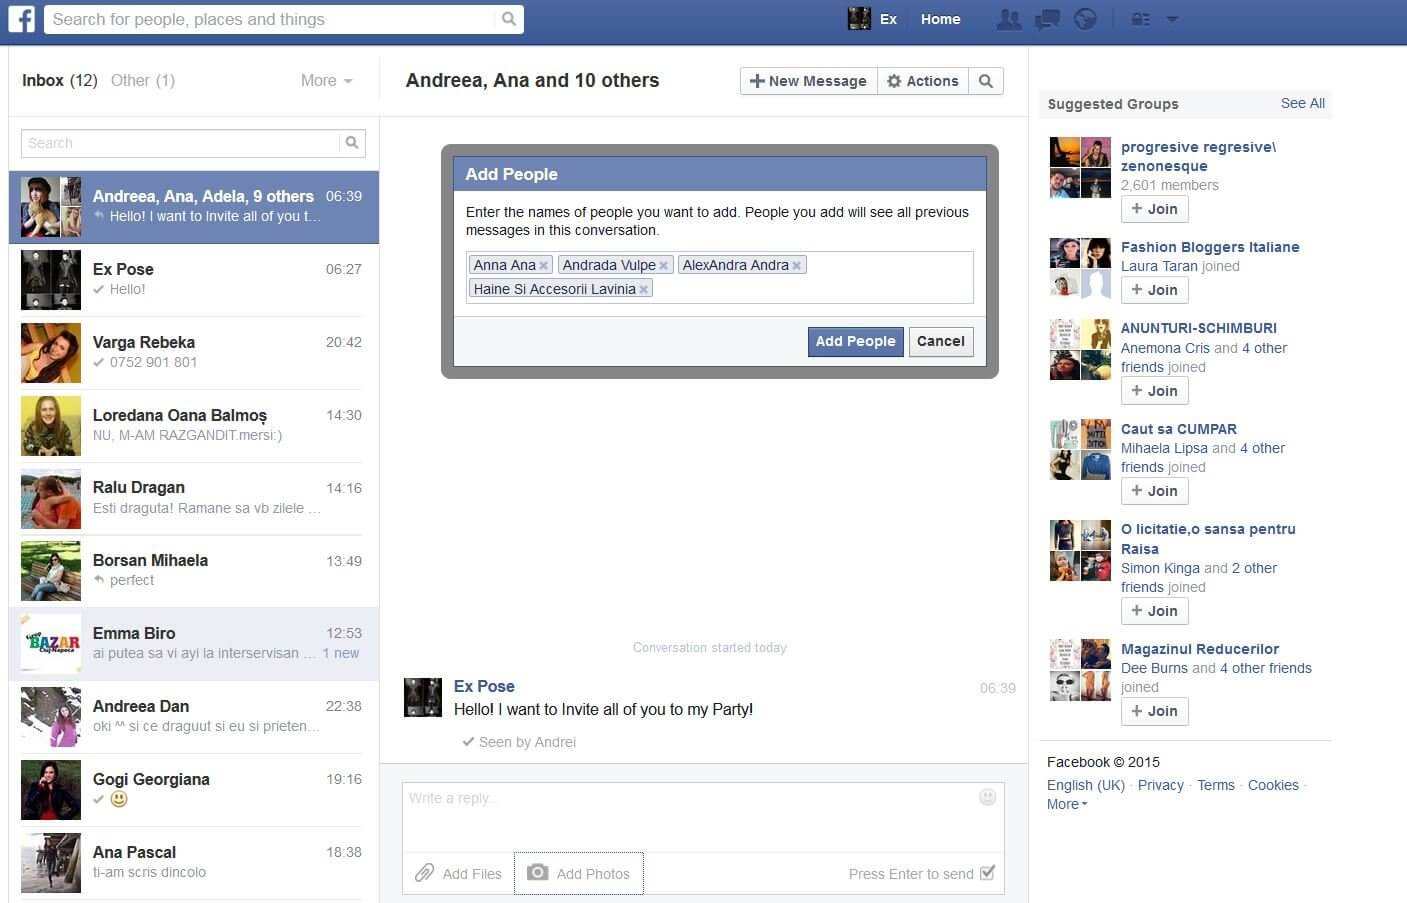 How to Send Messages/Photos/Videos on Facebook.com